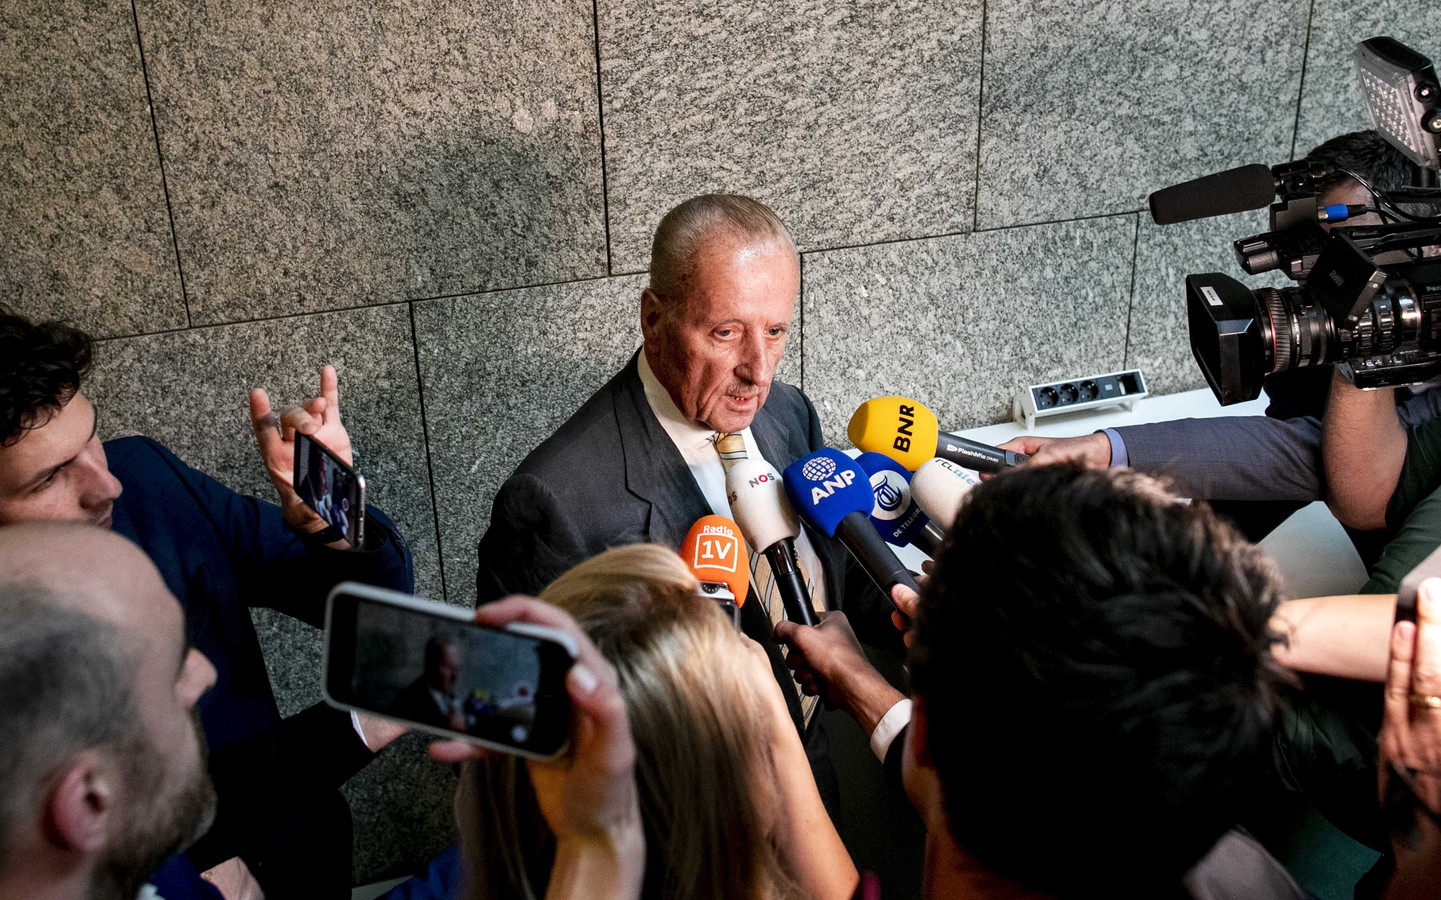 Theo Hiddema (FvD) in de Tweede Kamer.